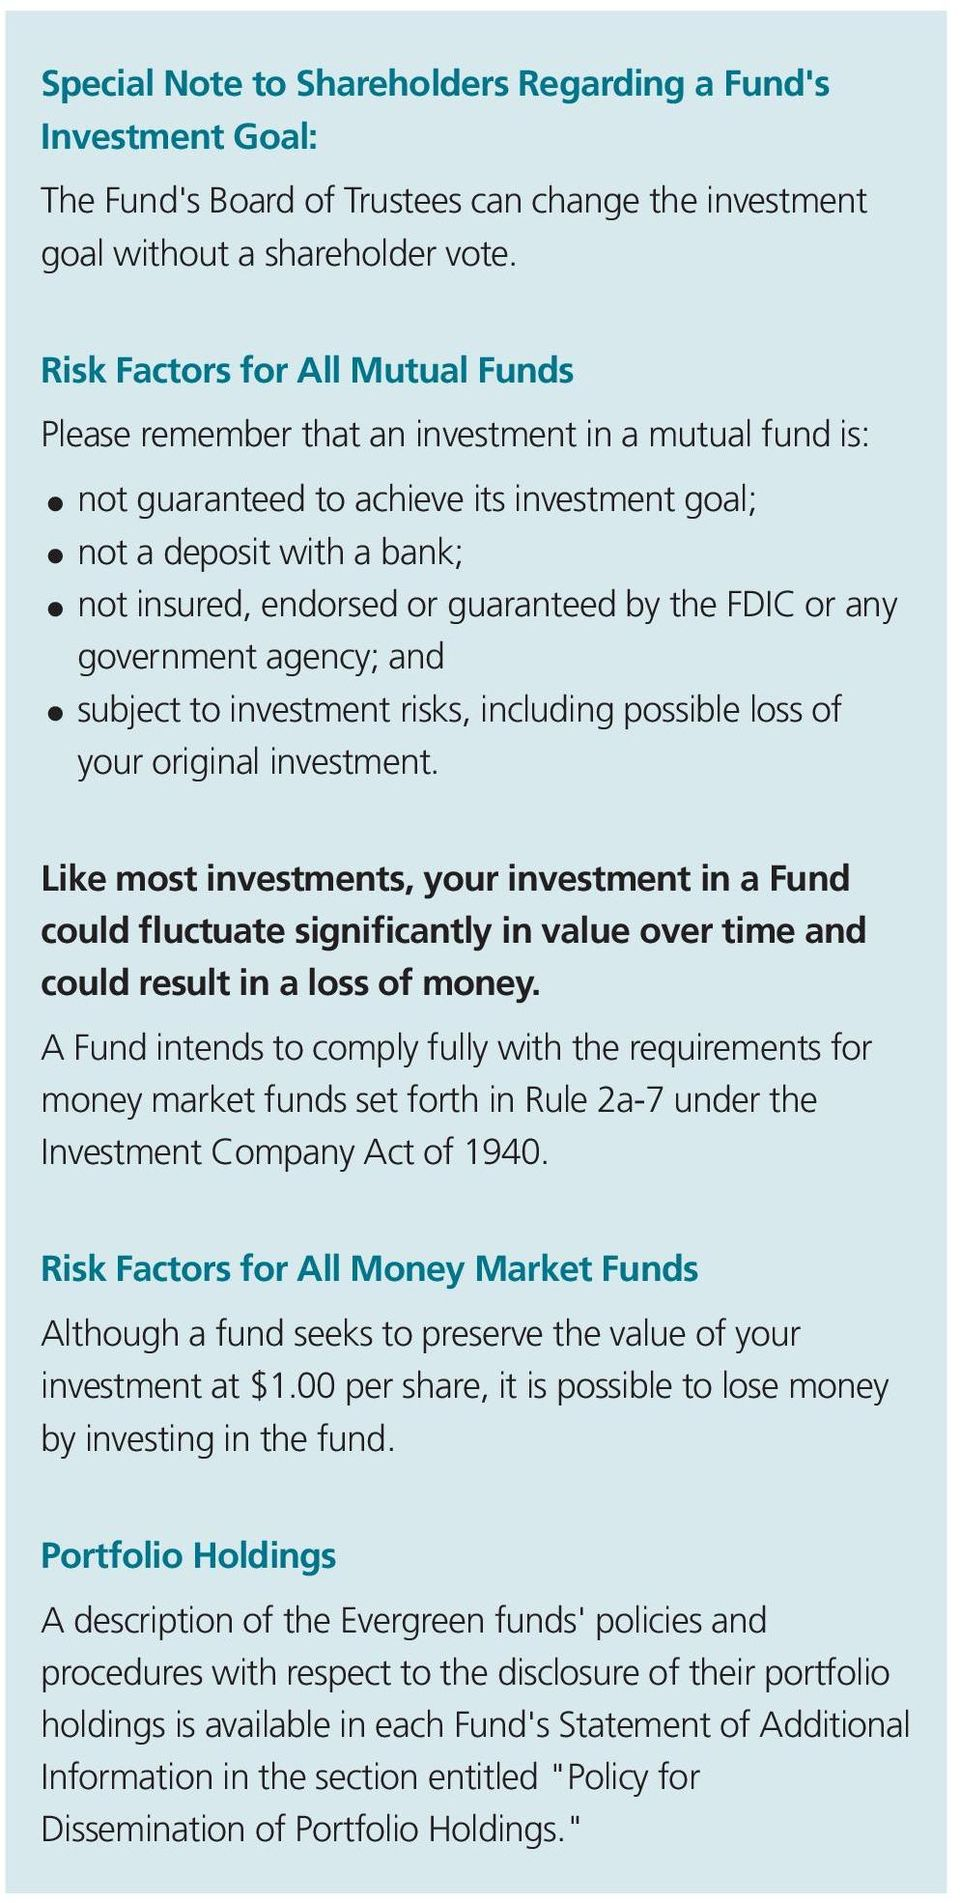 by the FDIC or any government agency; and subject to investment risks, including possible loss of your original investment.